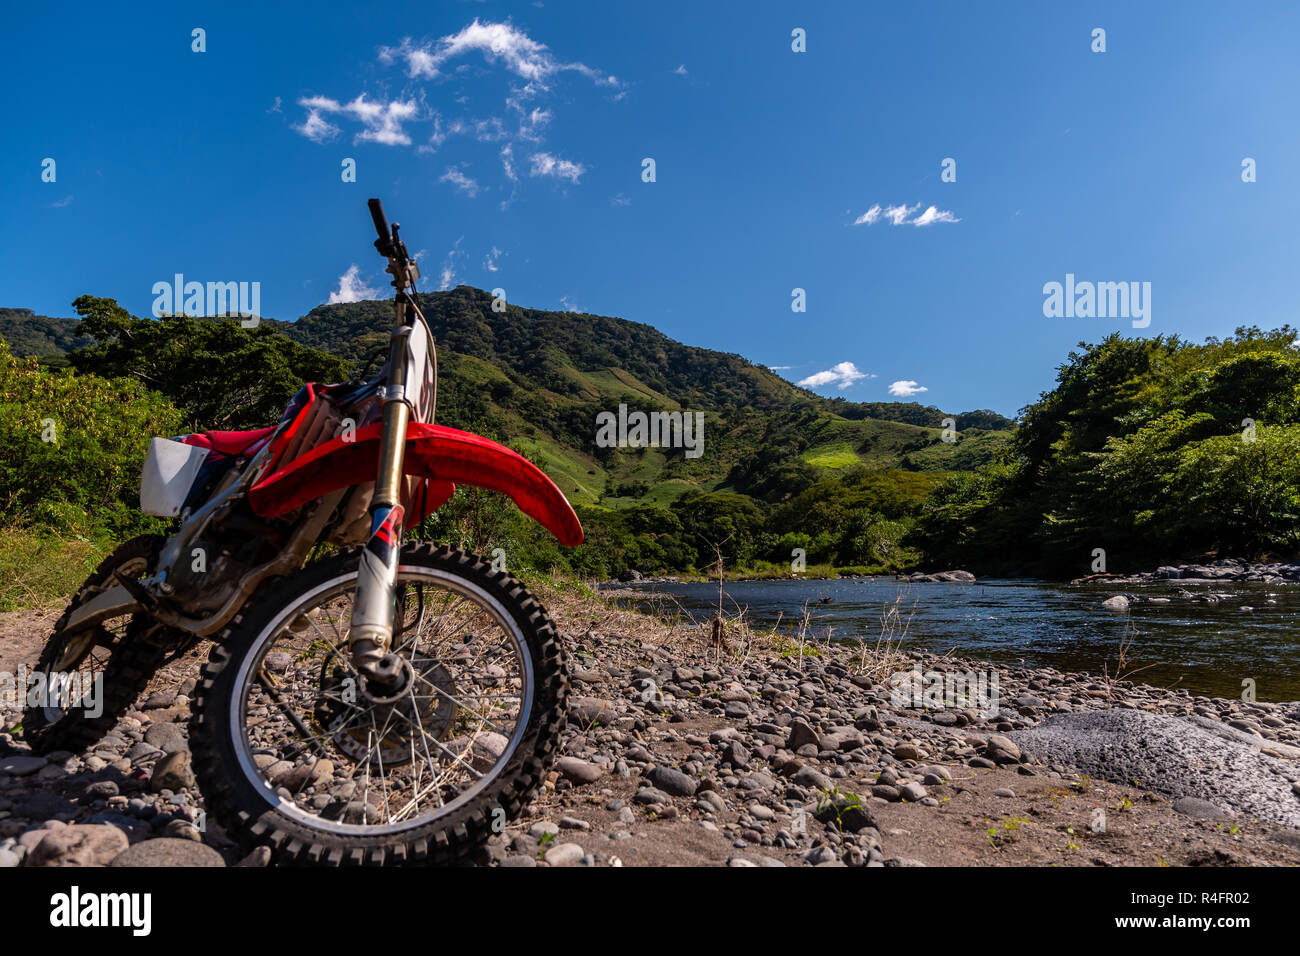 red dirt bike motorcycle and view of Guatemalan mountain and river landscape - Stock Image